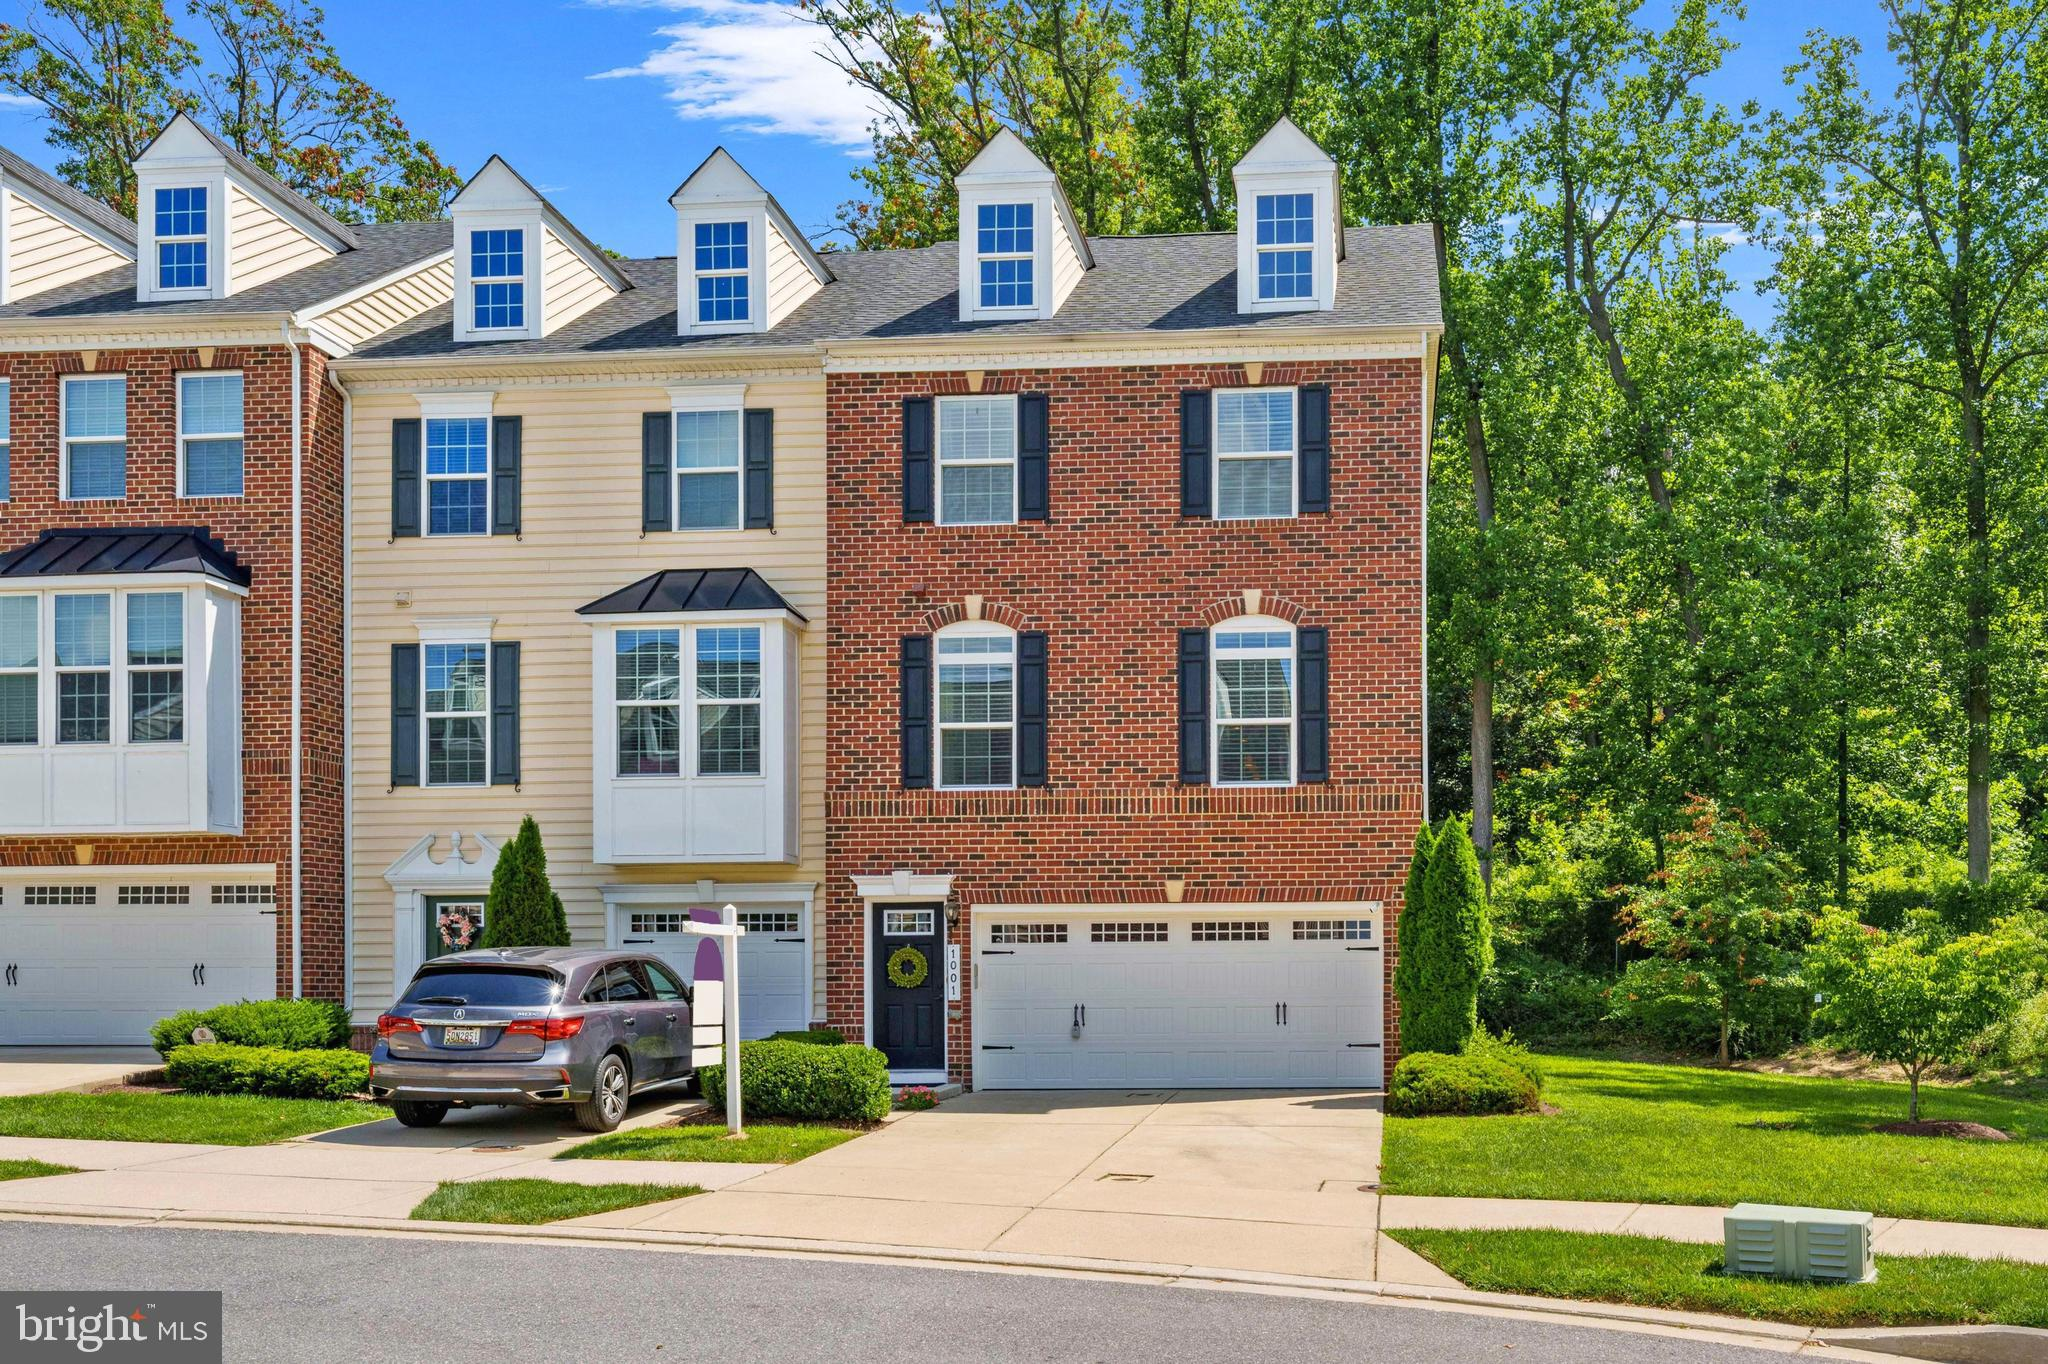 Book your appointment today to tour this beautiful oversized, light-filled end unit townhome in the community of Raincliffe. Enjoy the convenience of the attached 2-Car garage and 2-Car parking pad, perfect for guests. Built in 2014, this pristine home boasts a spacious open concept main level complete with hardwood flooring throughout the Dining Room, Living Room, and gourmet Kitchen featuring granite countertops, stainless steel appliances, and an island. Access the balcony through the Dining Room, overlooking the lush woods behind your home. The lower level contains a spacious carpeted Recreation Room with walkout access to the rear yard and a Full Bath. The rear covered porch is ideal for creating your own oasis, be it a plush sitting area or a place to play on rainy days. Your home is completed with 3 well-appointed bedrooms located on the upper level. The Primary Bedroom is regal and refined, bask in the tray ceiling, recessed lighting, walk-in closet, and spa-like Ensuite.  No need to struggle with laundry any longer, Laundry Room is located on the upper levels alongside the bedroom. Book your appointment today to secure your chance to tour this lovely home.